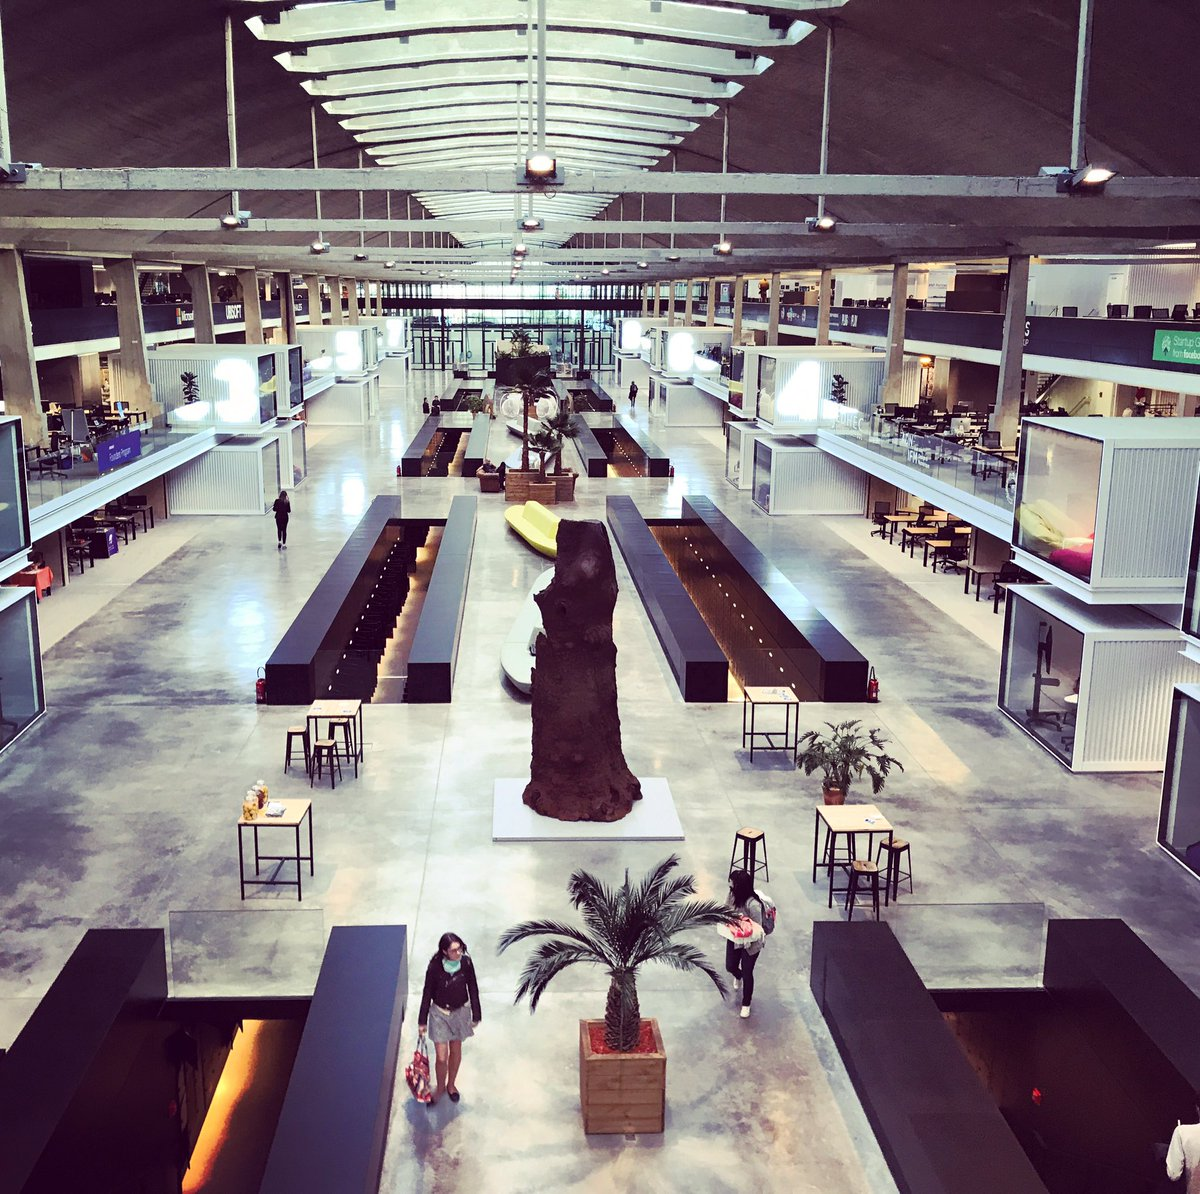 The onboarding day at @joinstationf  Proud to be part of world&#39;s biggest #startup campus  #mystartuplife #FrenchTech #Fellowship <br>http://pic.twitter.com/yUzqct8kEr